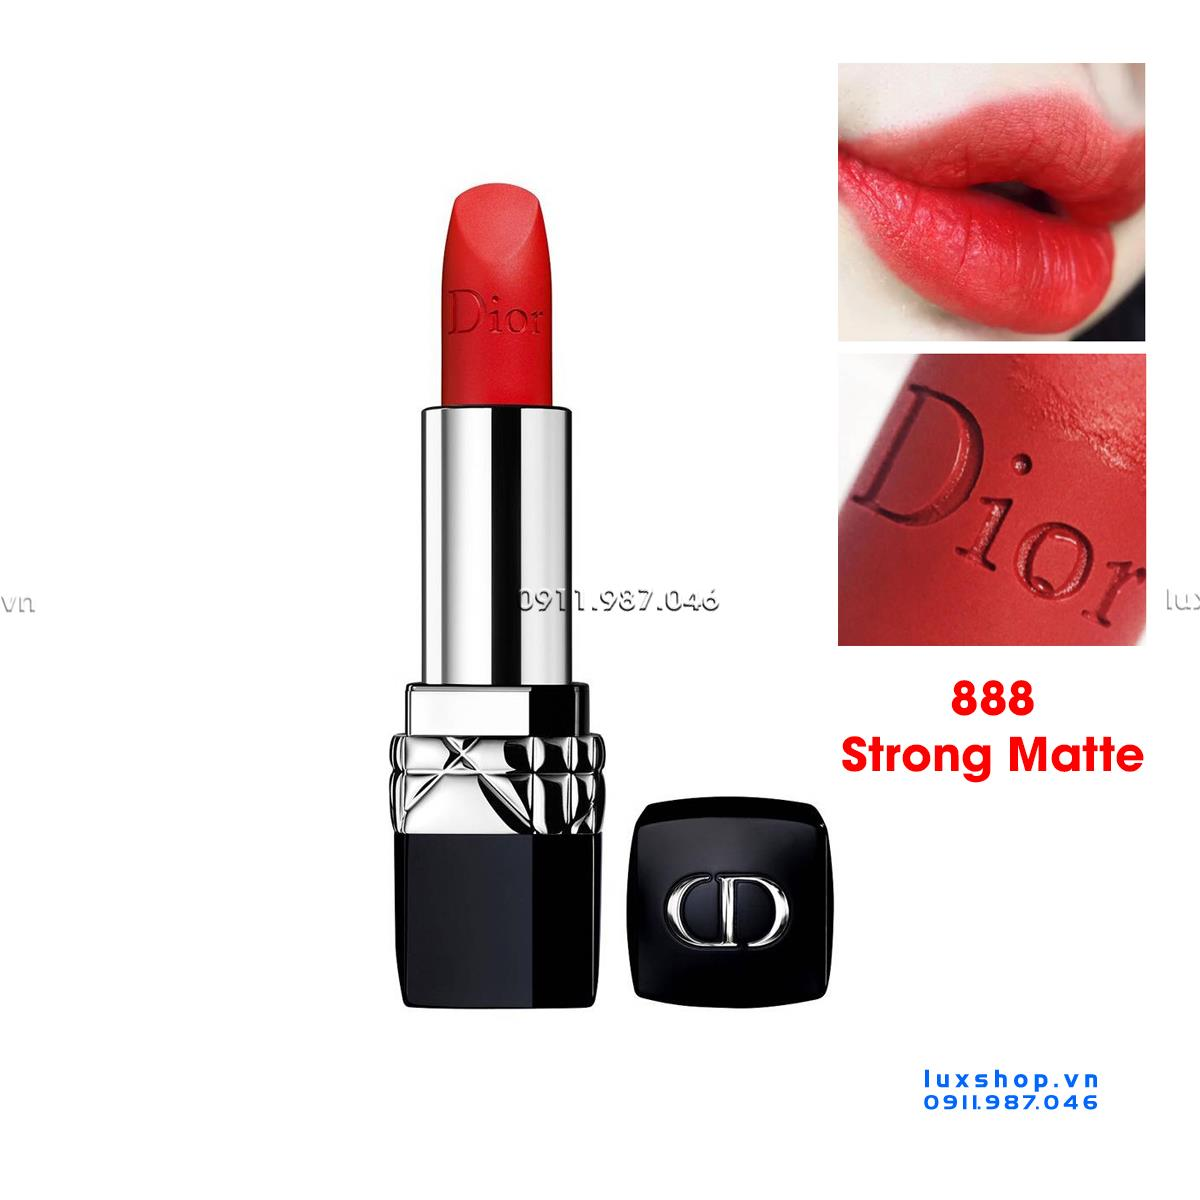 son-moi-dior-888-strong-matte-mau-do-cam-chinh-hang-vo-den-pn102039